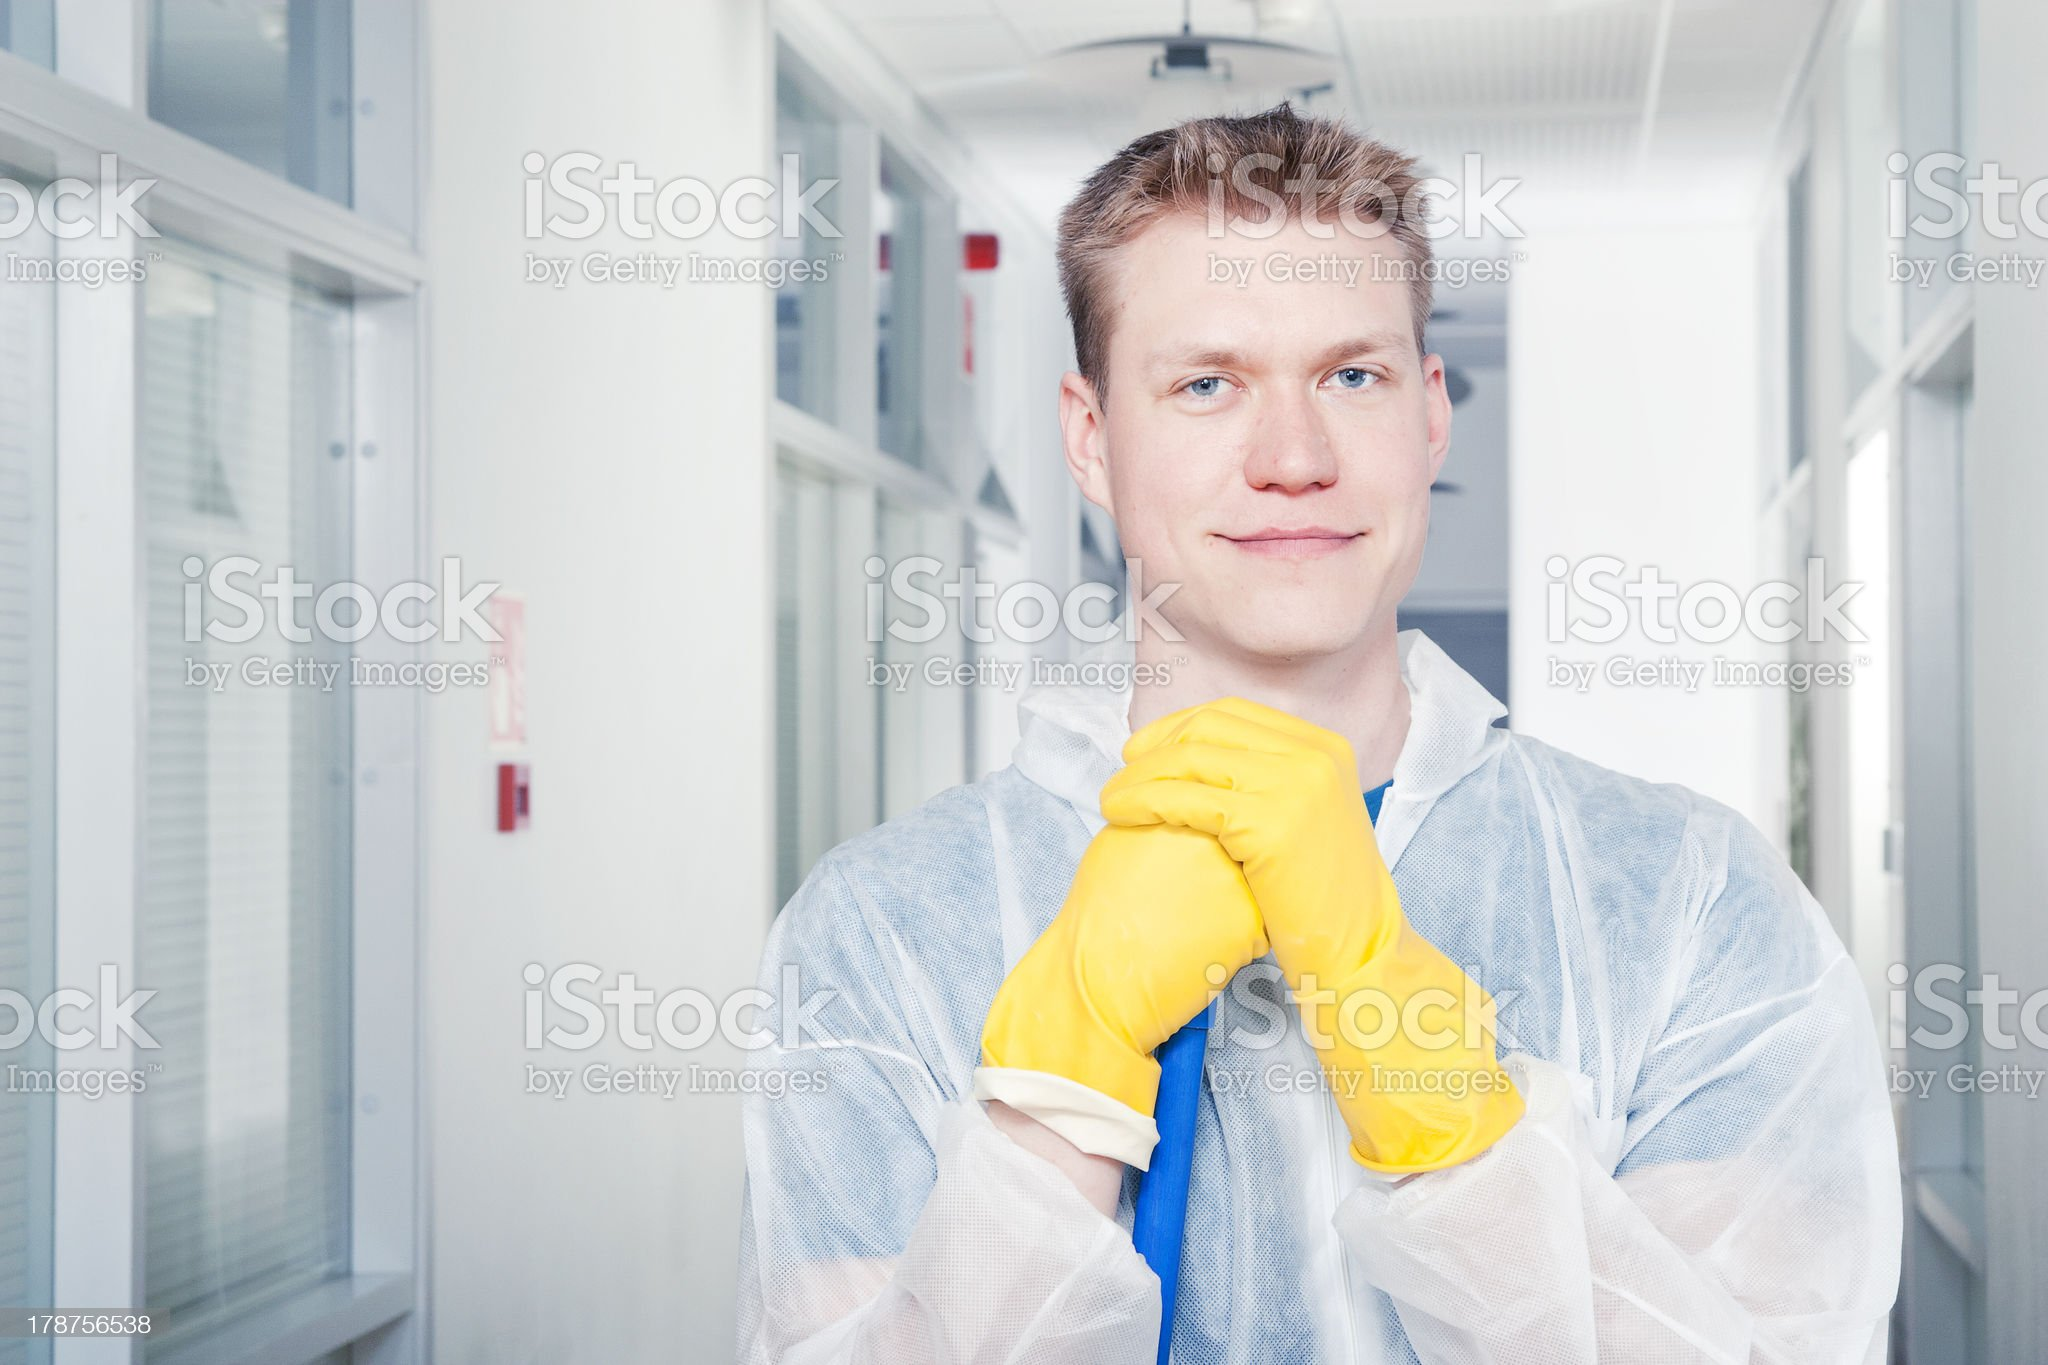 Portrait of a smiling cleaner man wearing protective coveralls royalty-free stock photo